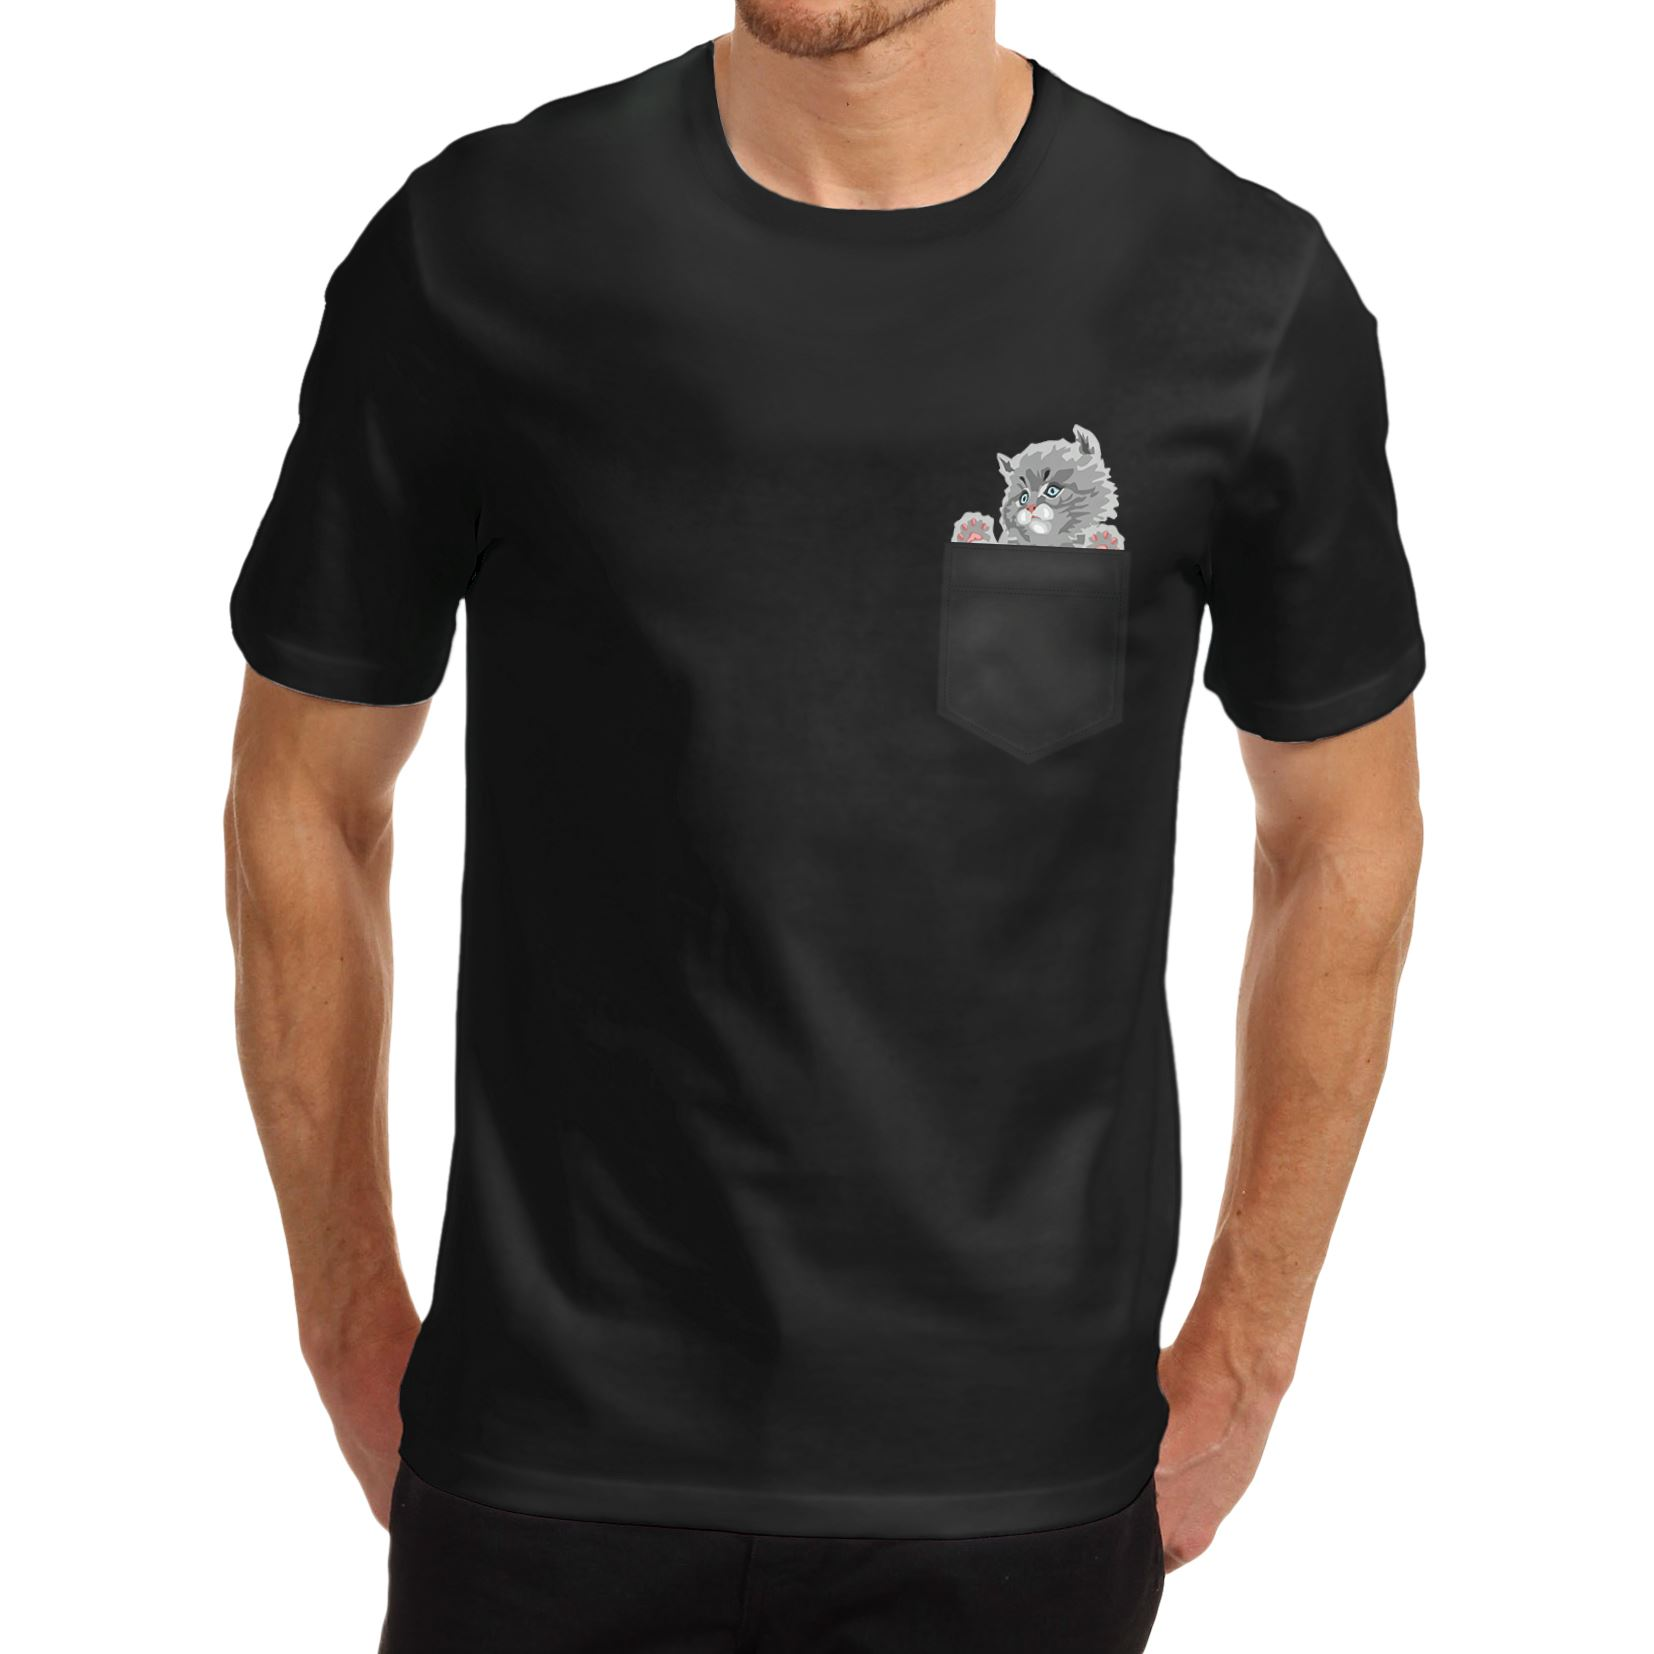 Black t shirt with pocket - Men 039 S Cat In A Pocket Cute